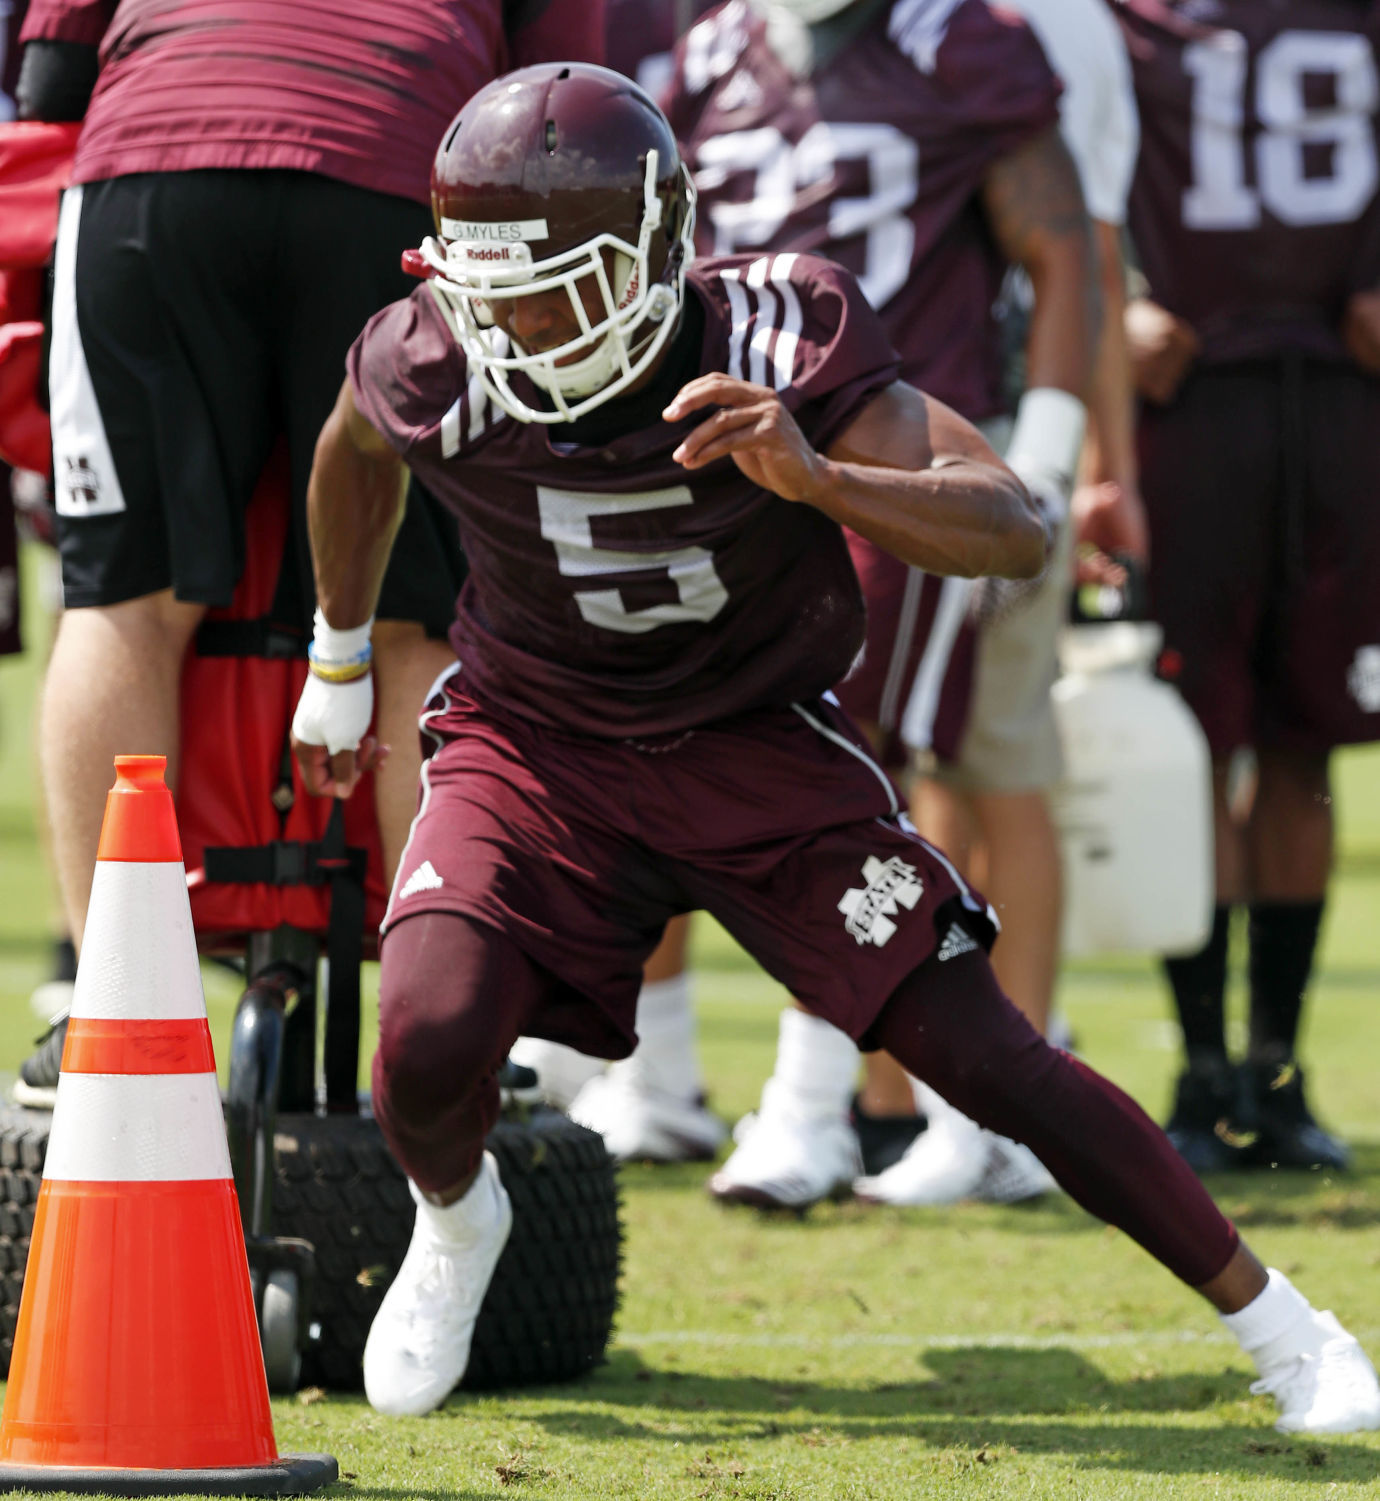 Mississippi State RB Kylin Hill Arrested for Reckless Driving